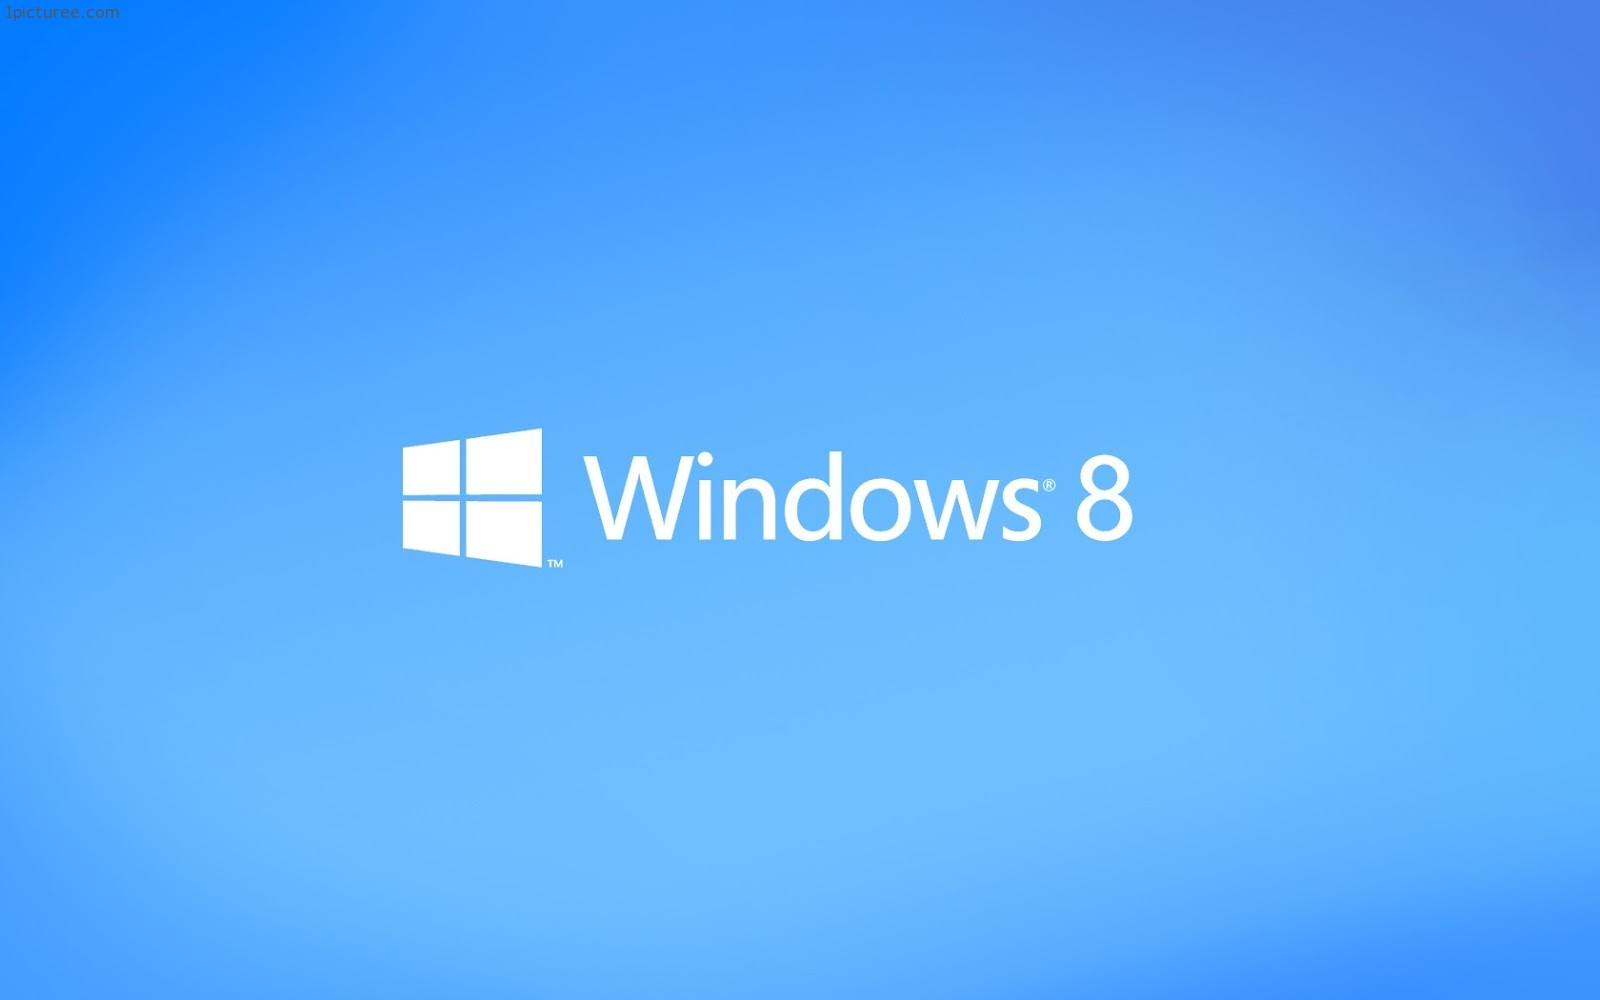 Windows 8 Logo Desktop Wallpaper HD dimensions wallpaper